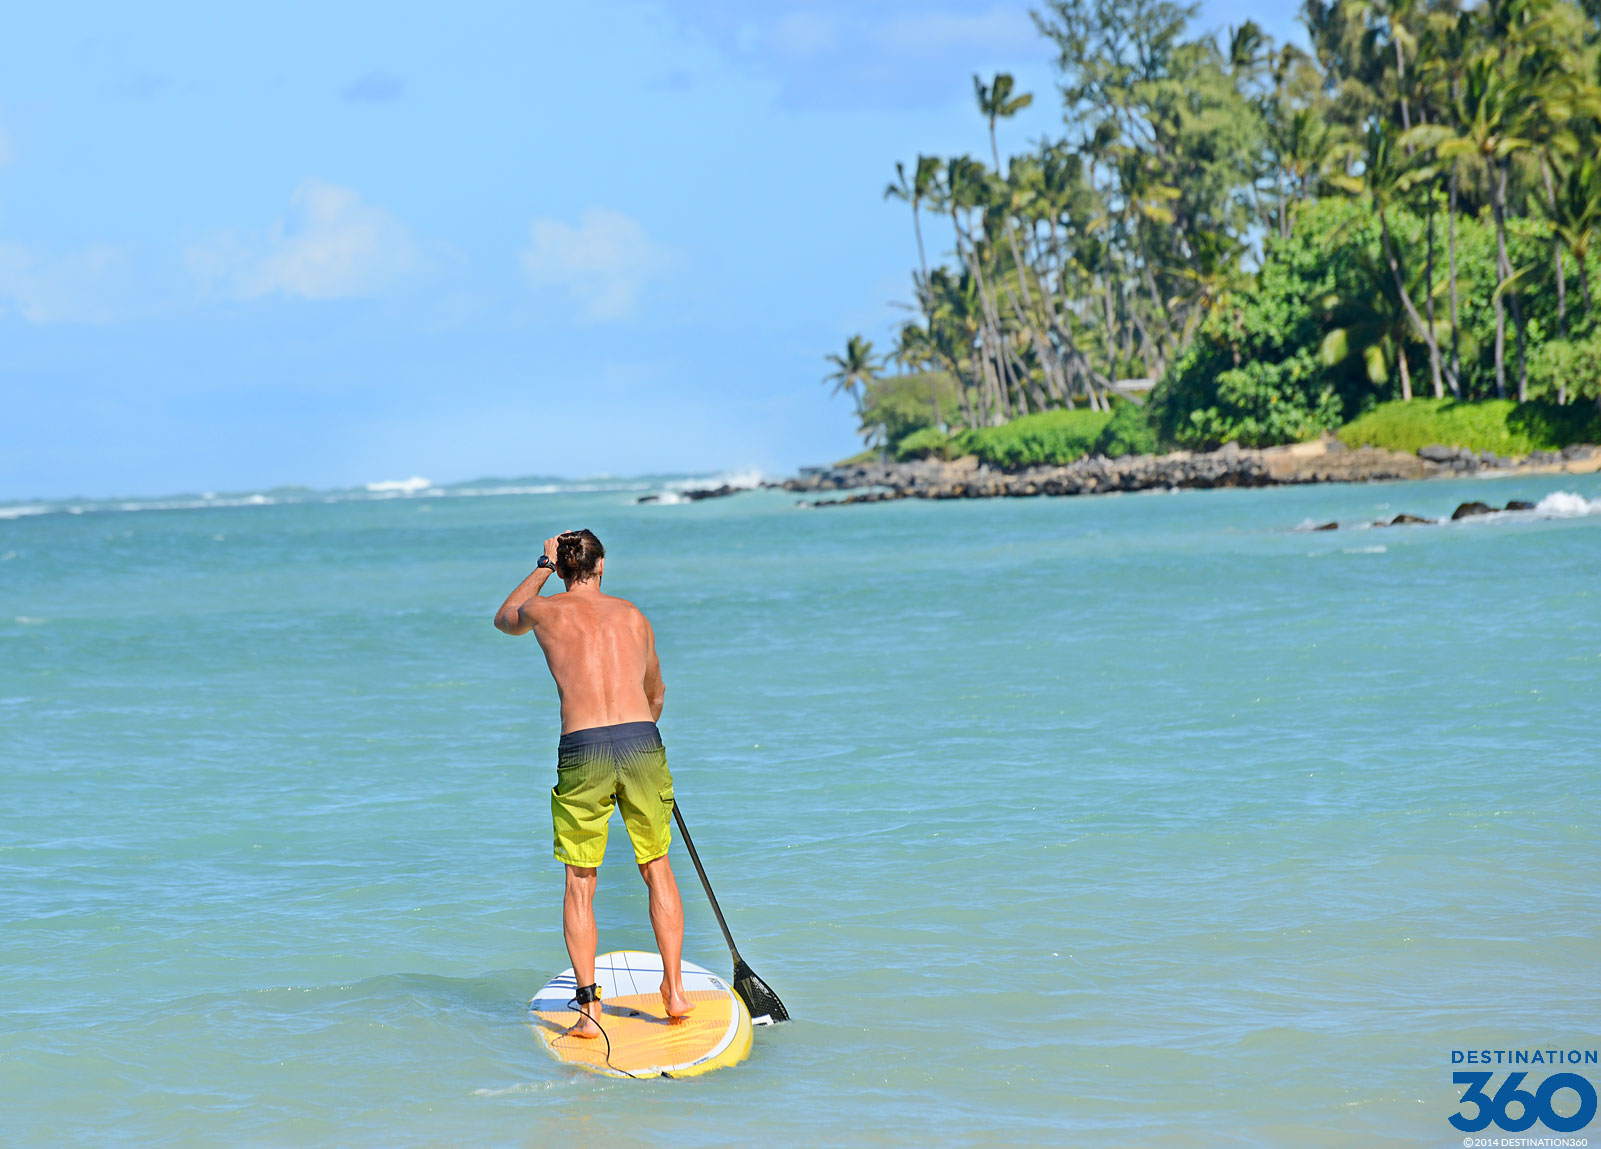 maui sup - paddleboarding locations, lessons, and rentals in maui